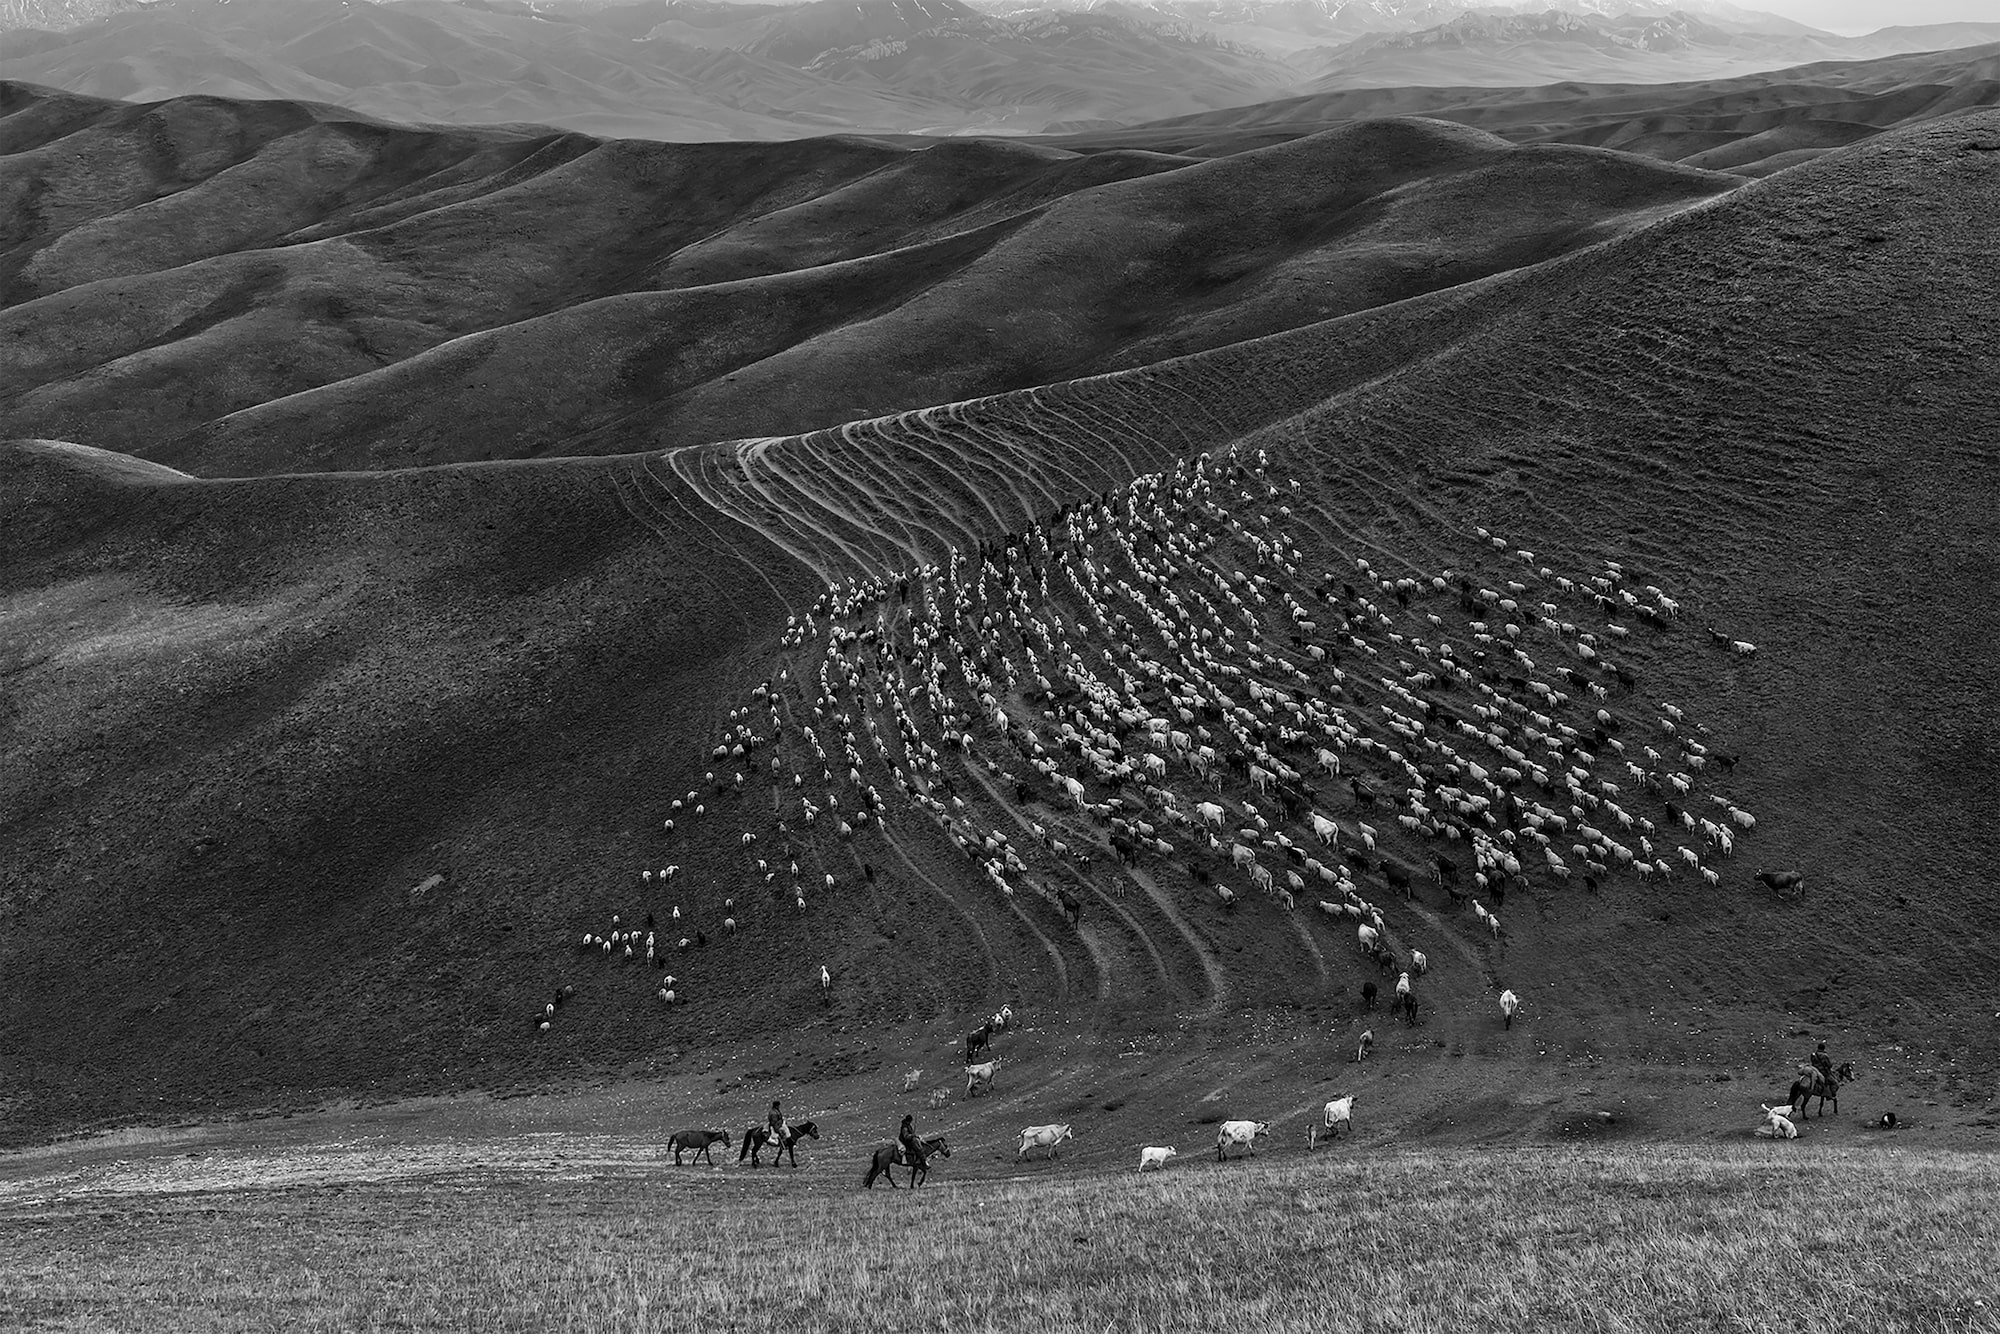 frederik buyckx sony alpha 7RM3 horseback shepherds lead a flock of sheep up a twisted mountainside